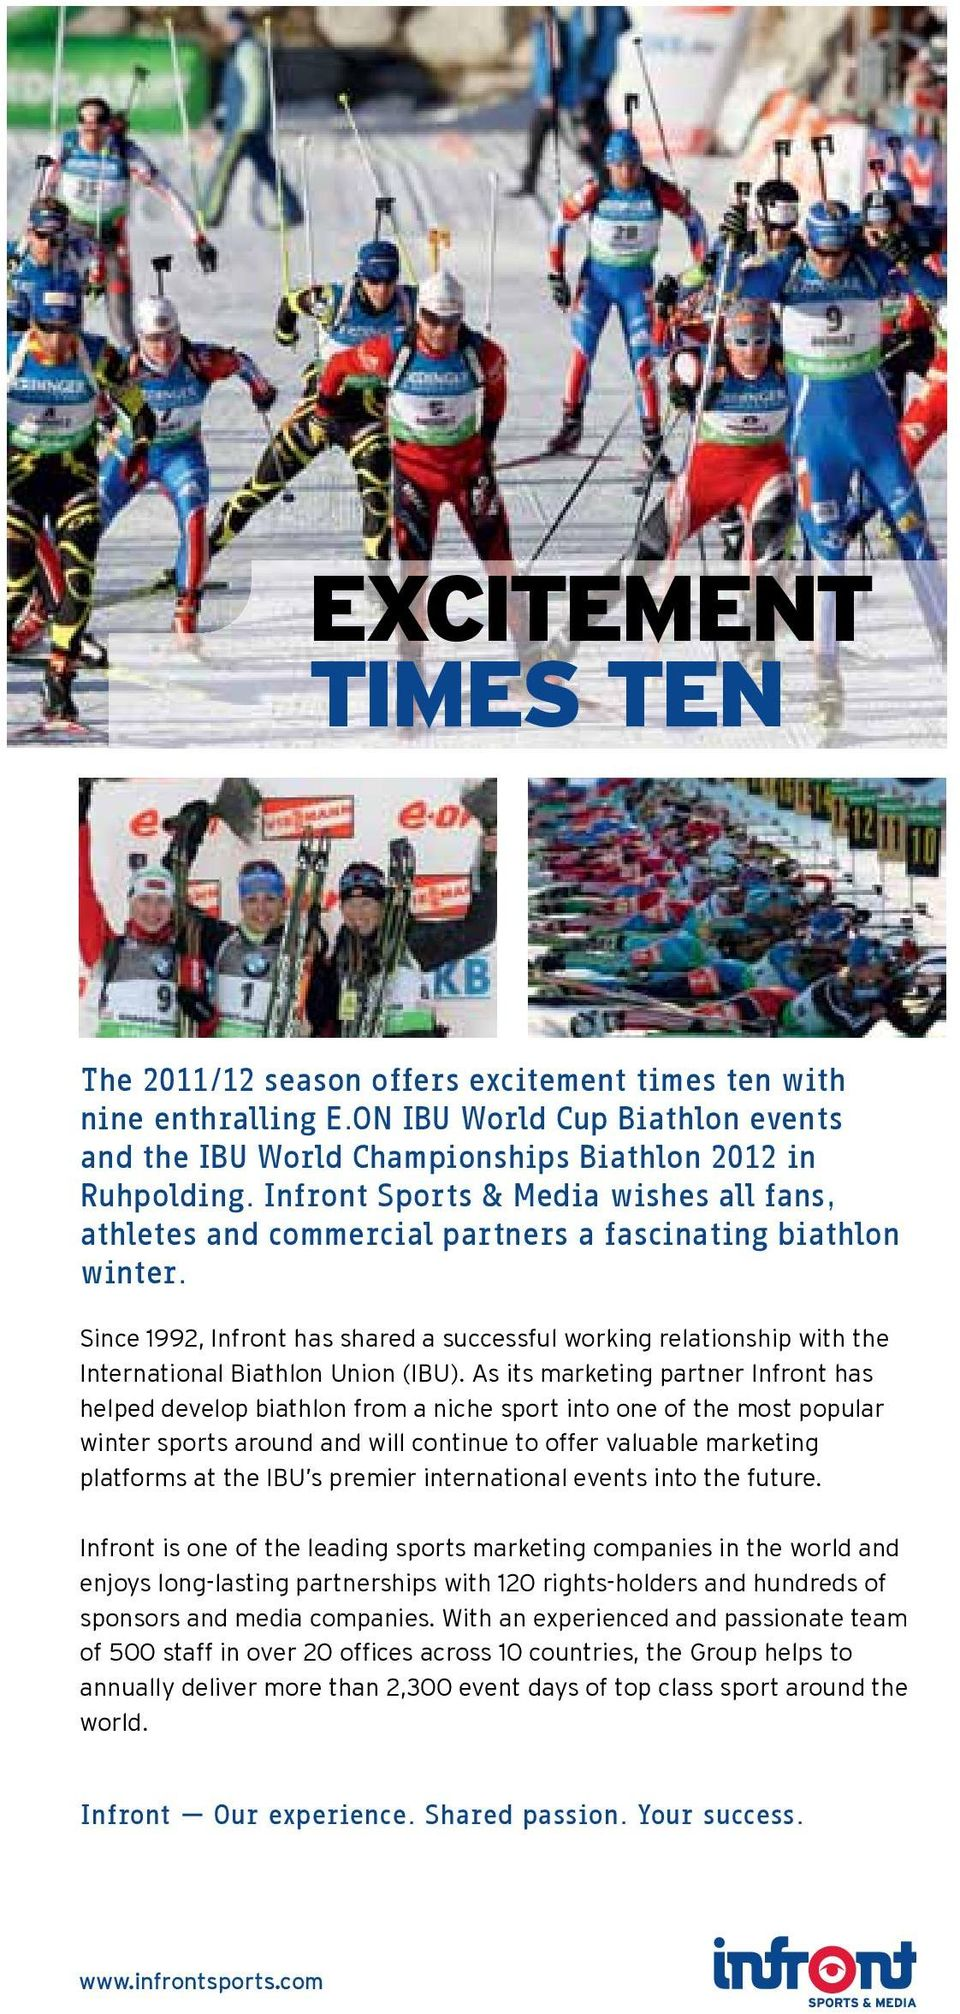 Since 1992, Infront has shared a successful working relationship with the International Biathlon Union (IBU).